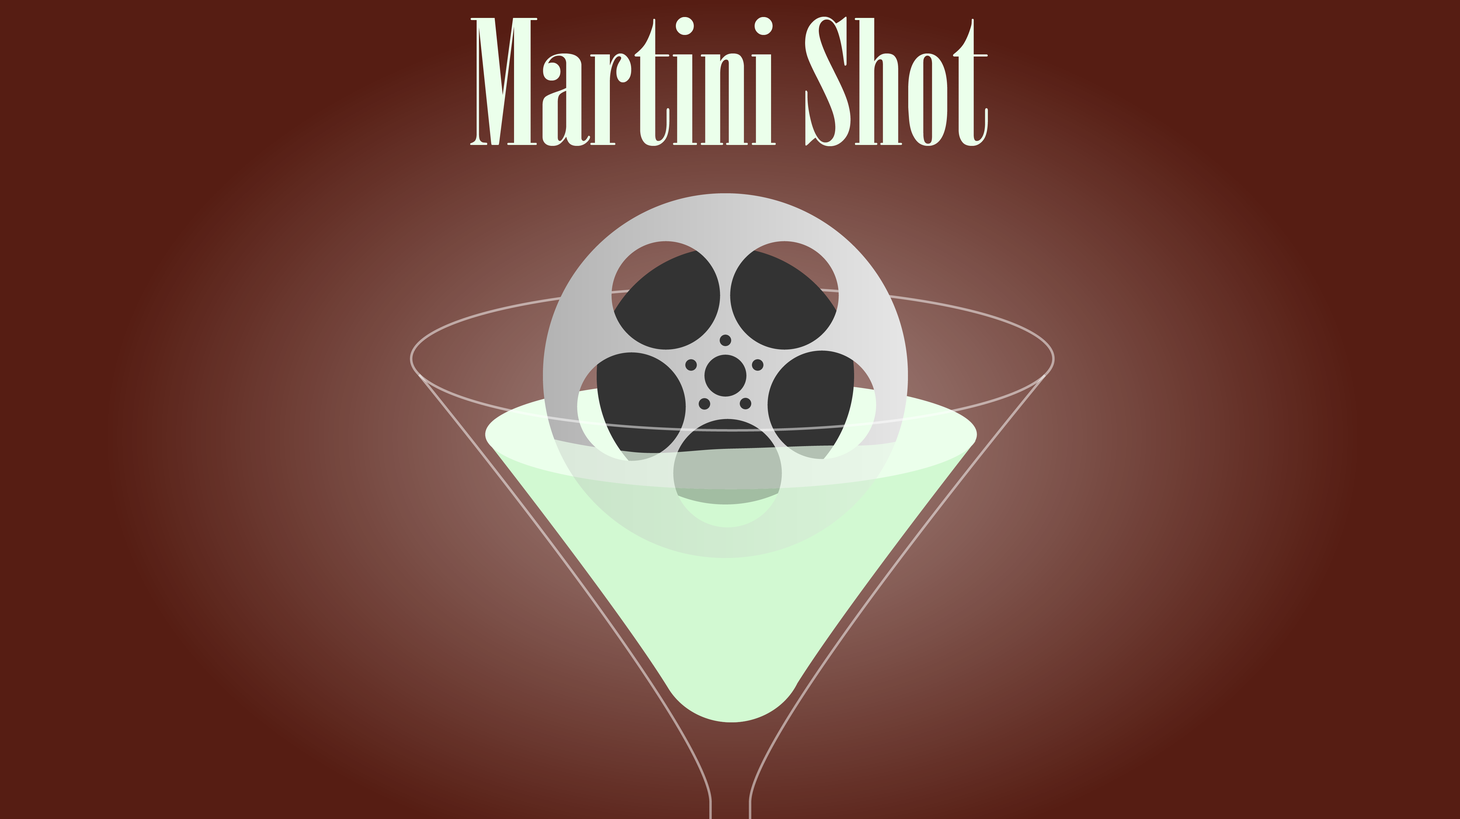 This is Rob Long and on today's Martini Shot I have a super groovy singer friend who tells me that the reason I don't like the sound of my own voice is because I don't know how to breathe, which is weird because I'm breathing right now, but it…